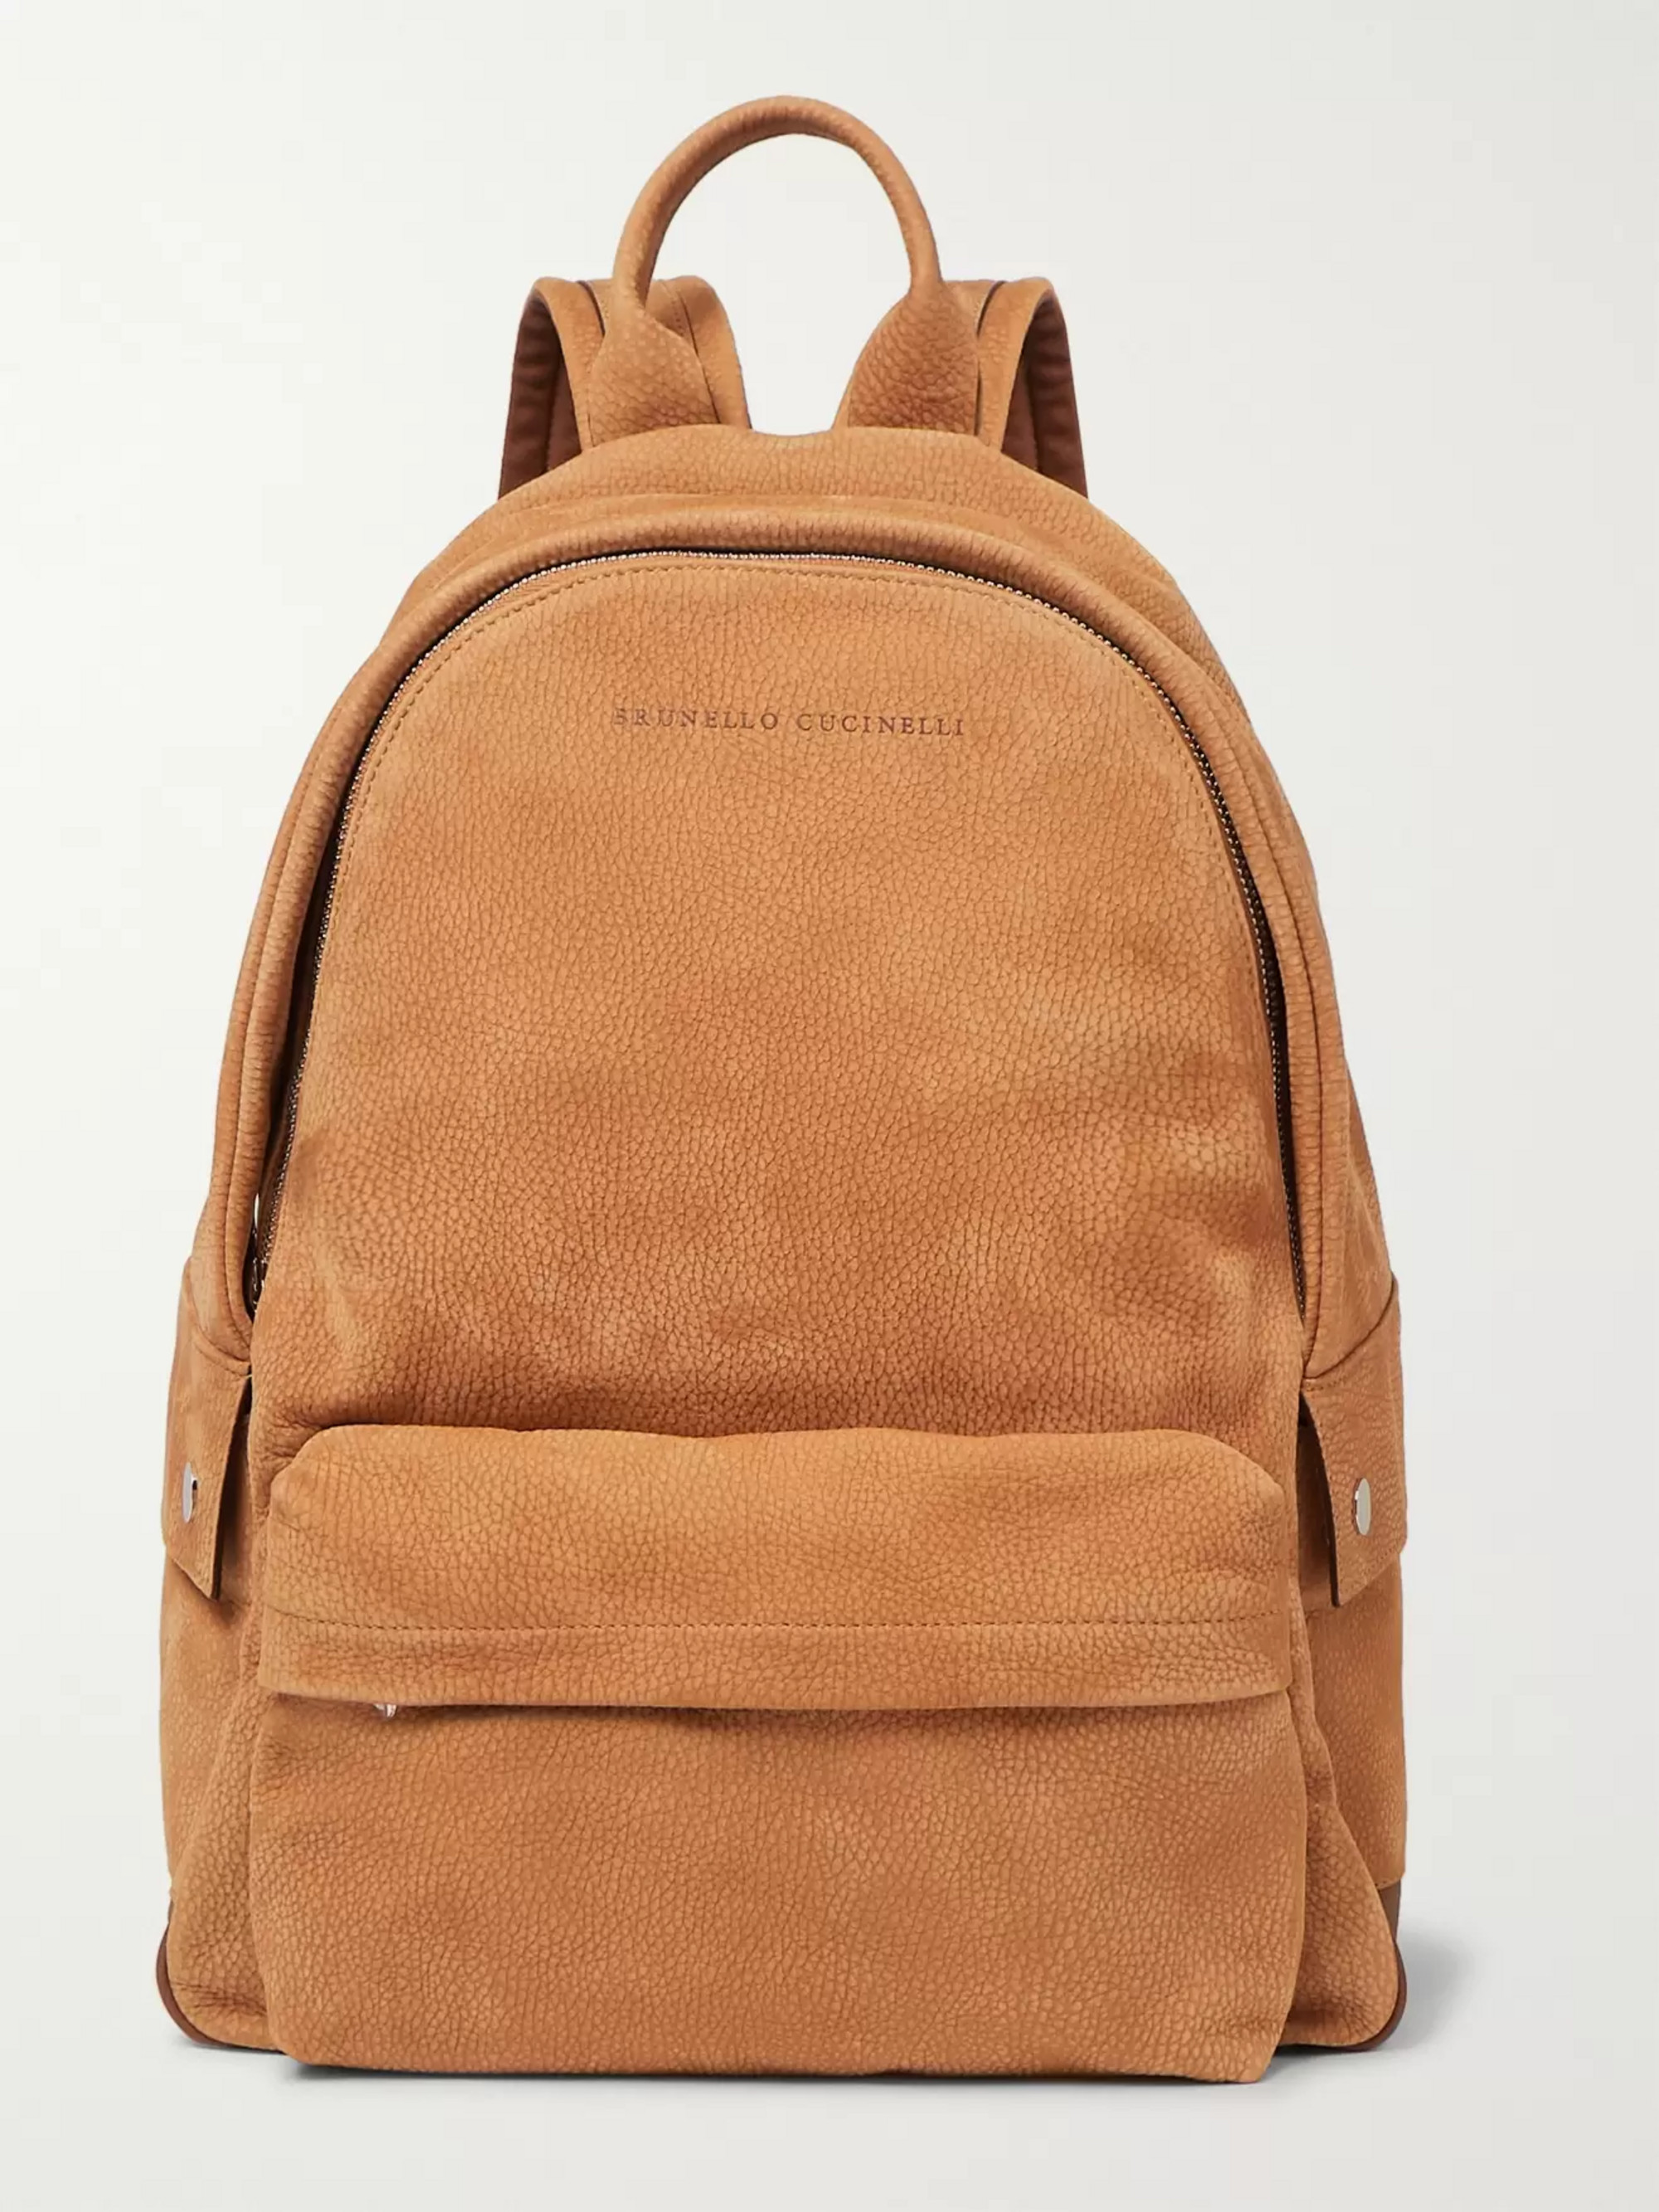 Brunello Cucinelli Full-Grain Nubuck Backpack